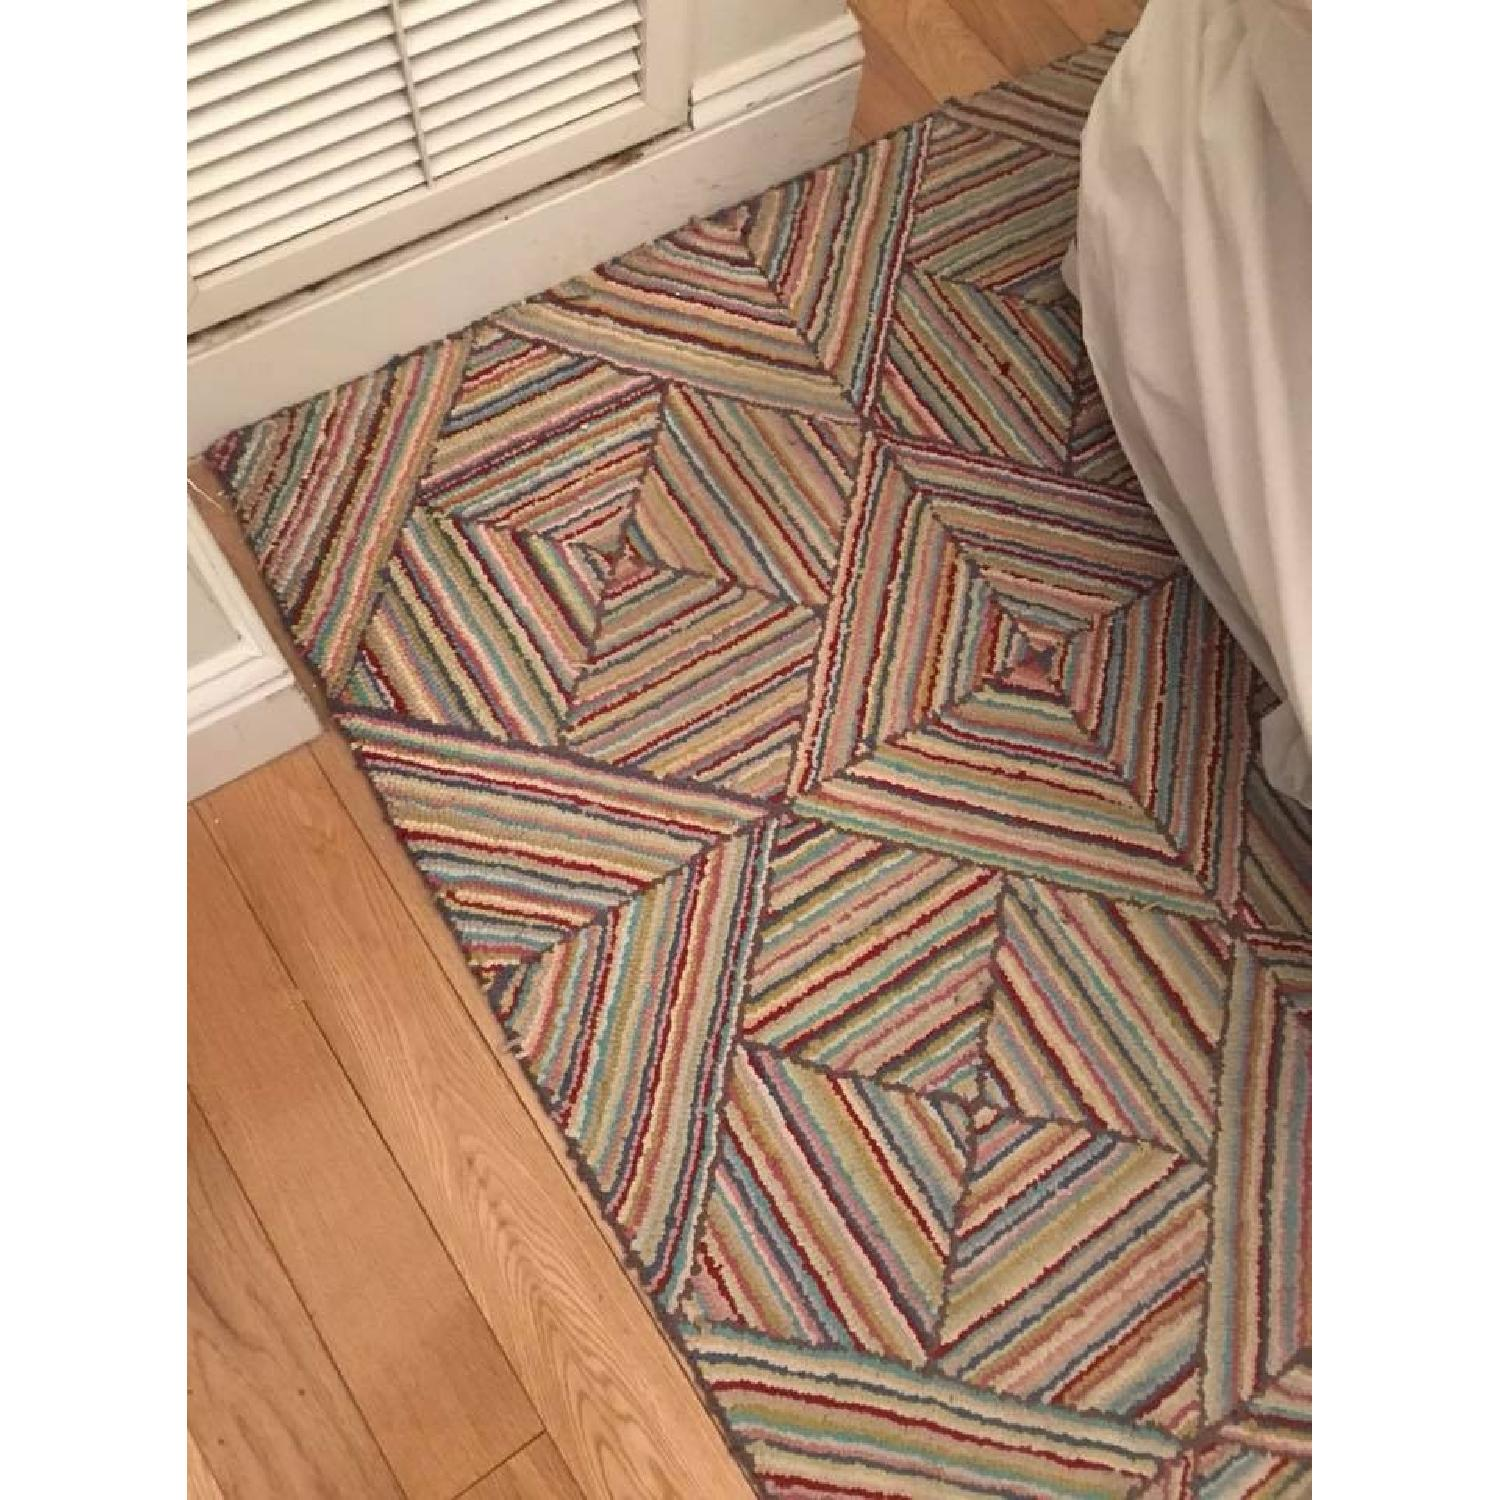 Dash & Albert Multicolored Rug